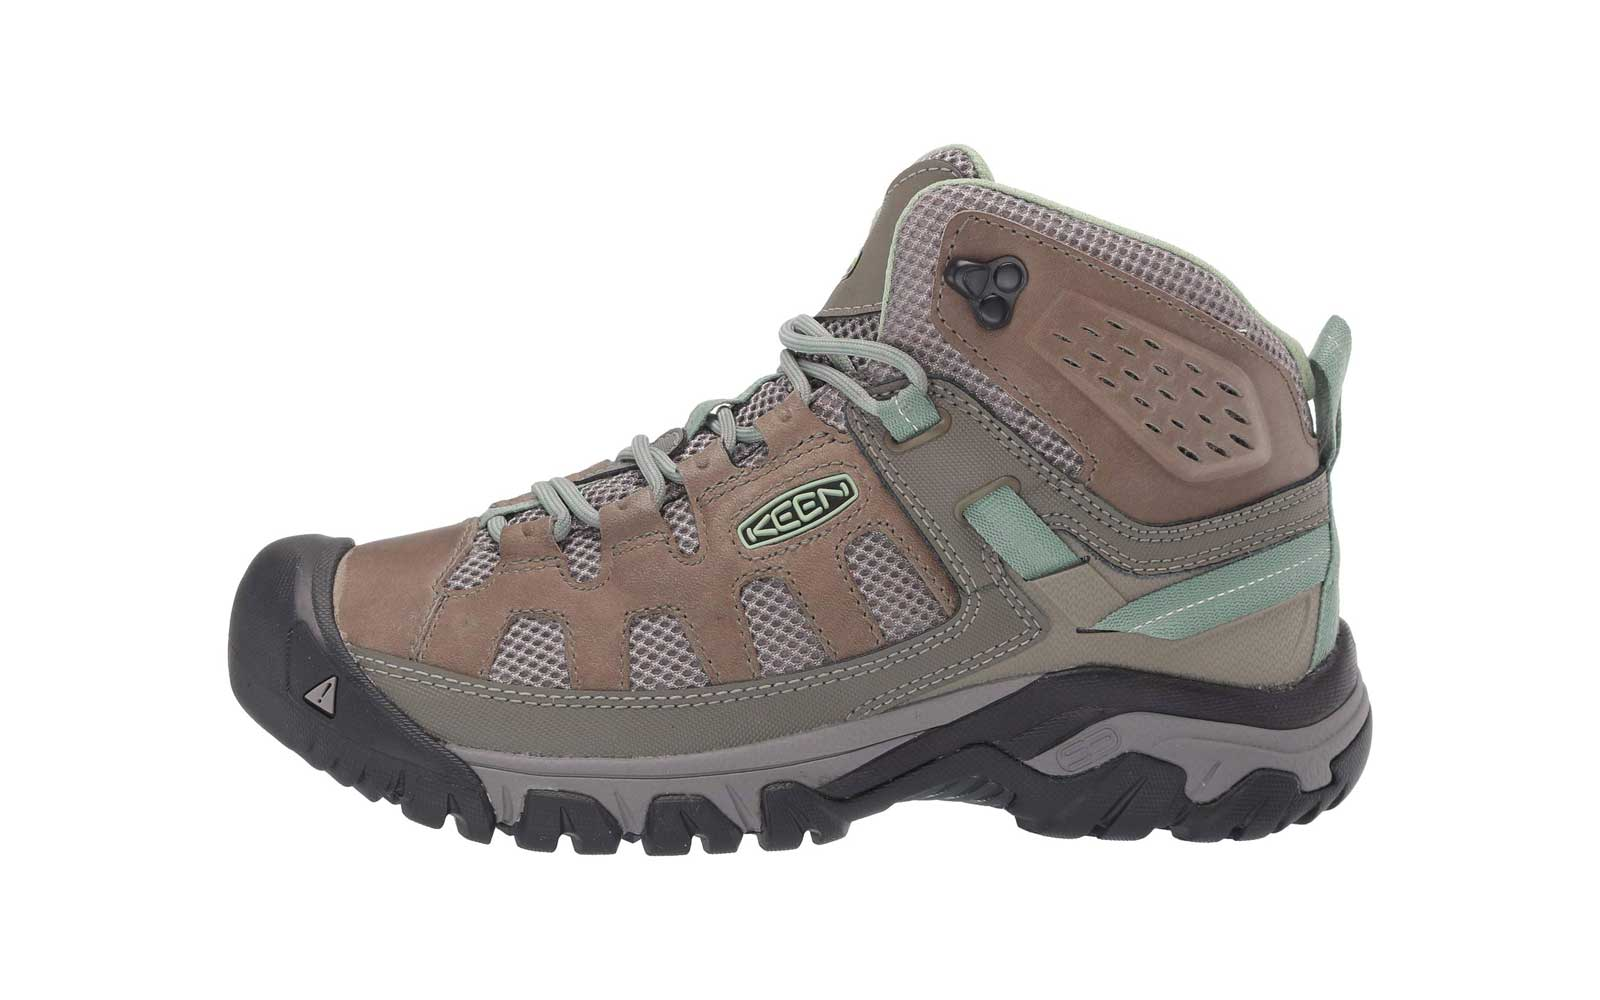 outlet store info for free delivery The 20 Best Hiking Shoes and Boots for Women in 2019 | Travel + ...